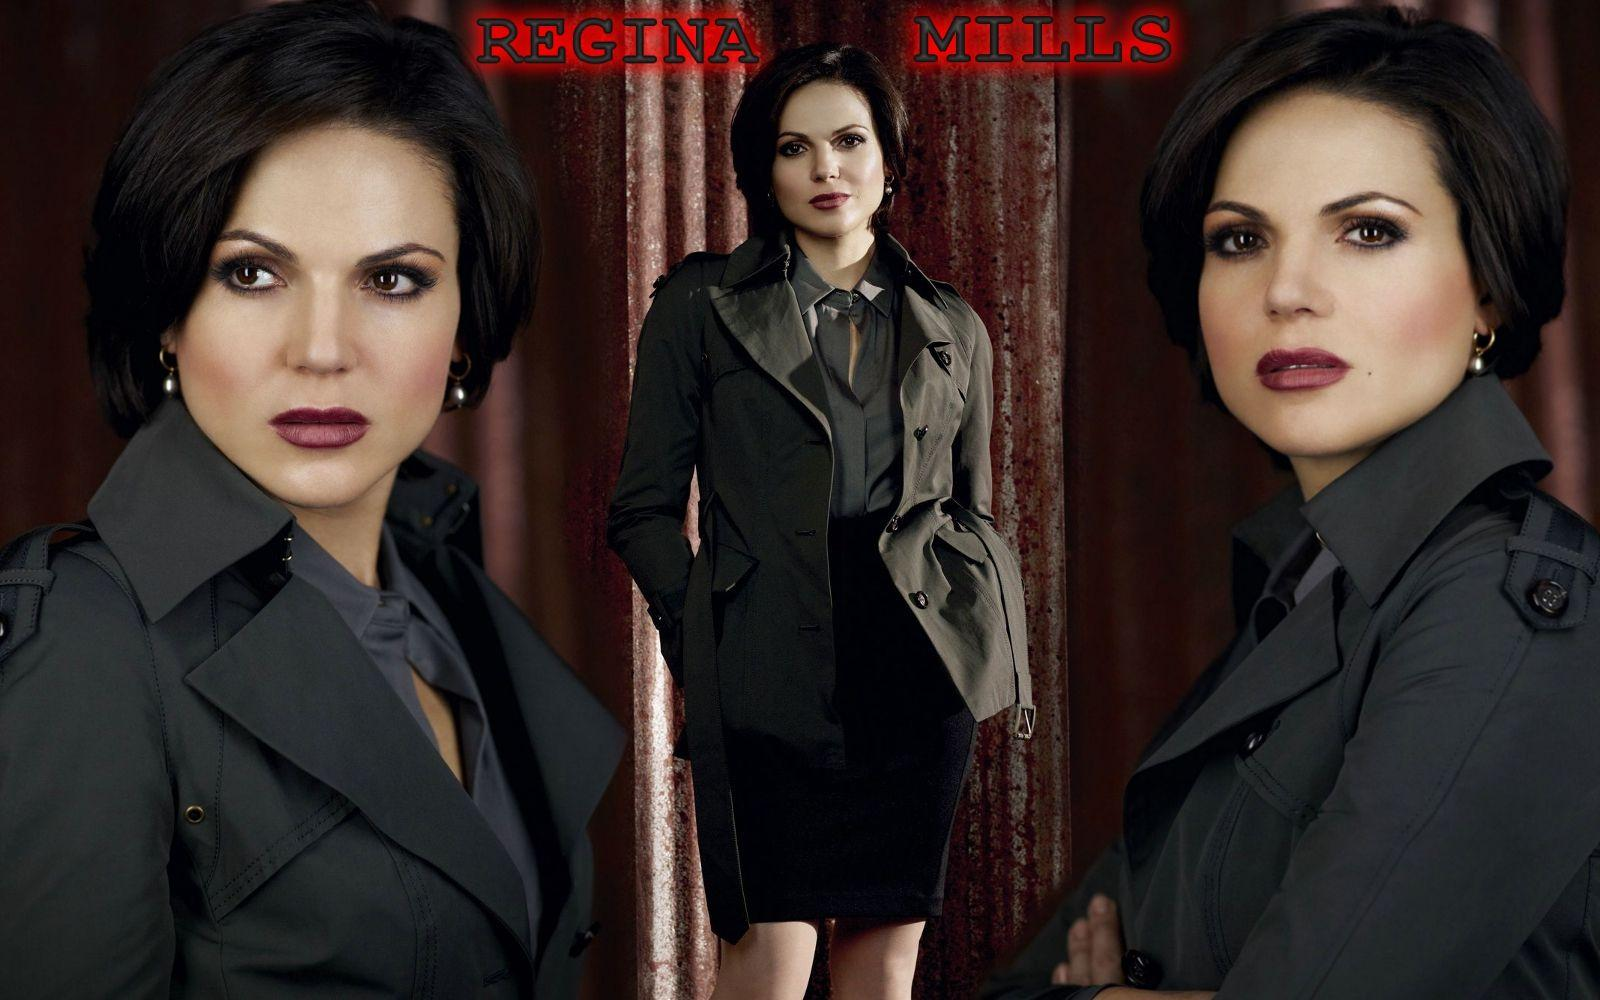 Lana Parrilla images lana wallpaper HD wallpaper and background .